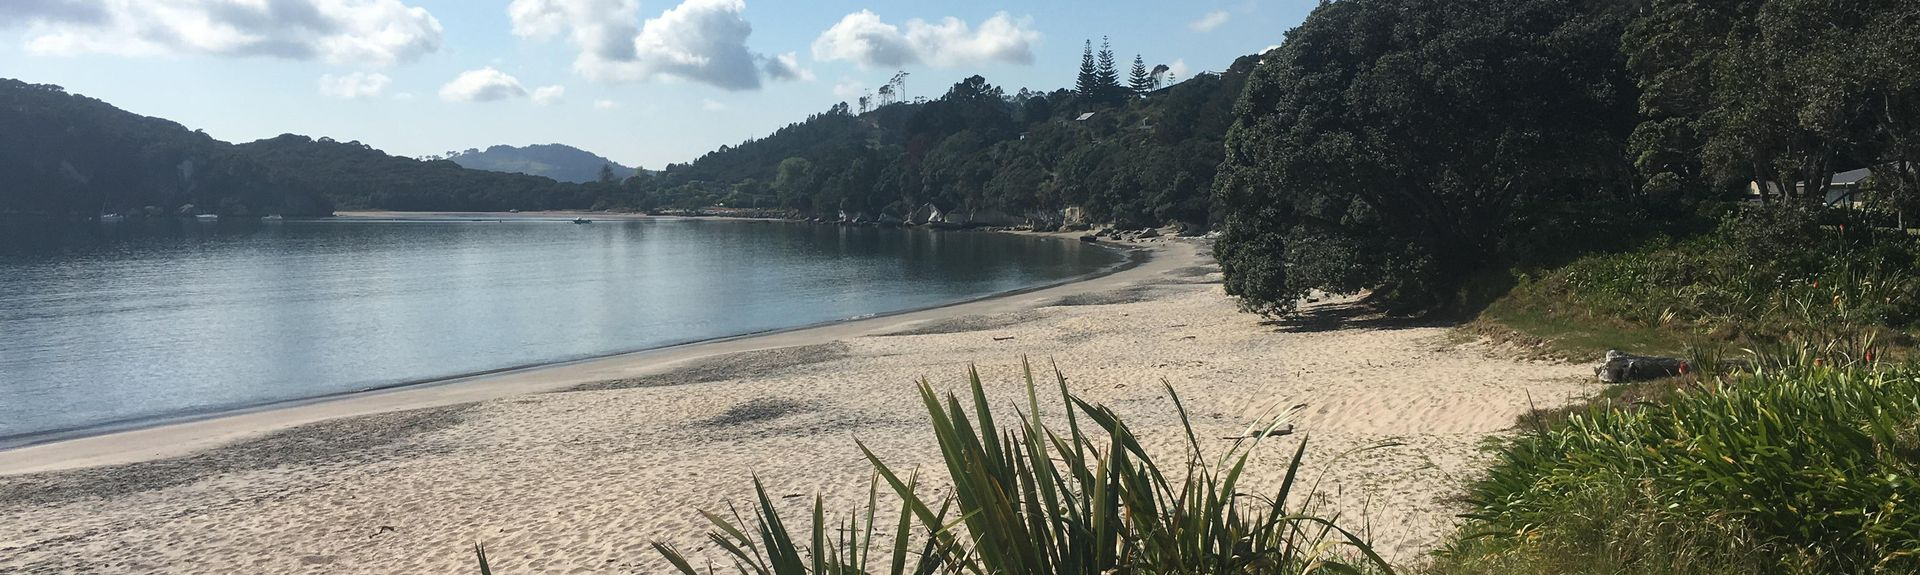 Hot Water Beach, Thames-Coromandel District, Waikato, New Zealand